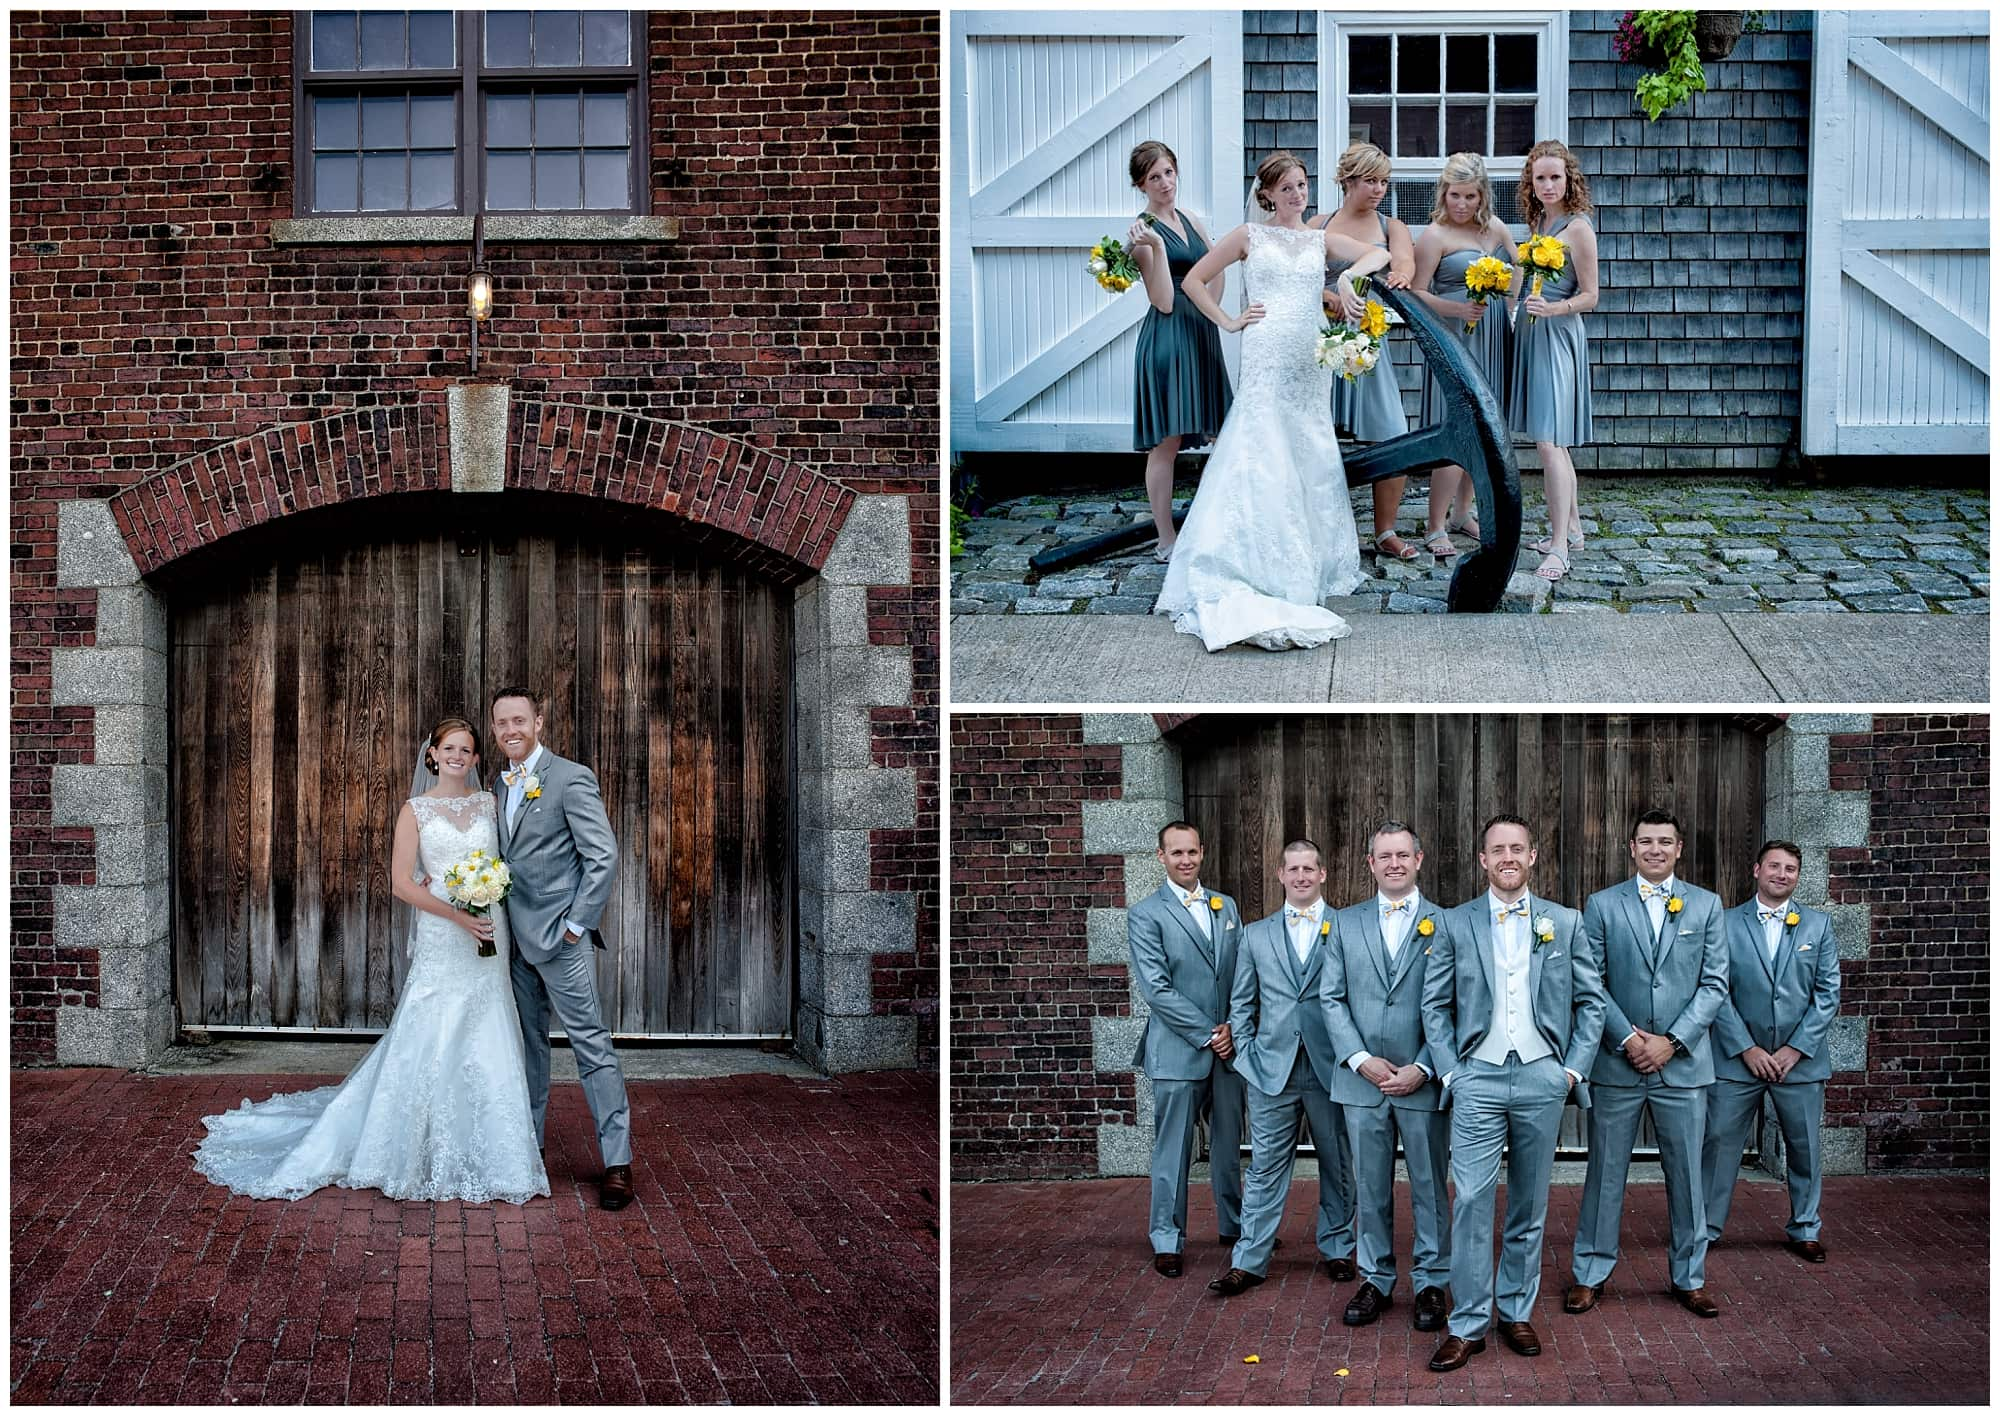 The bride and groom pose with their wedding party for wedding photos at the Historic Properties in Halifax, NS.